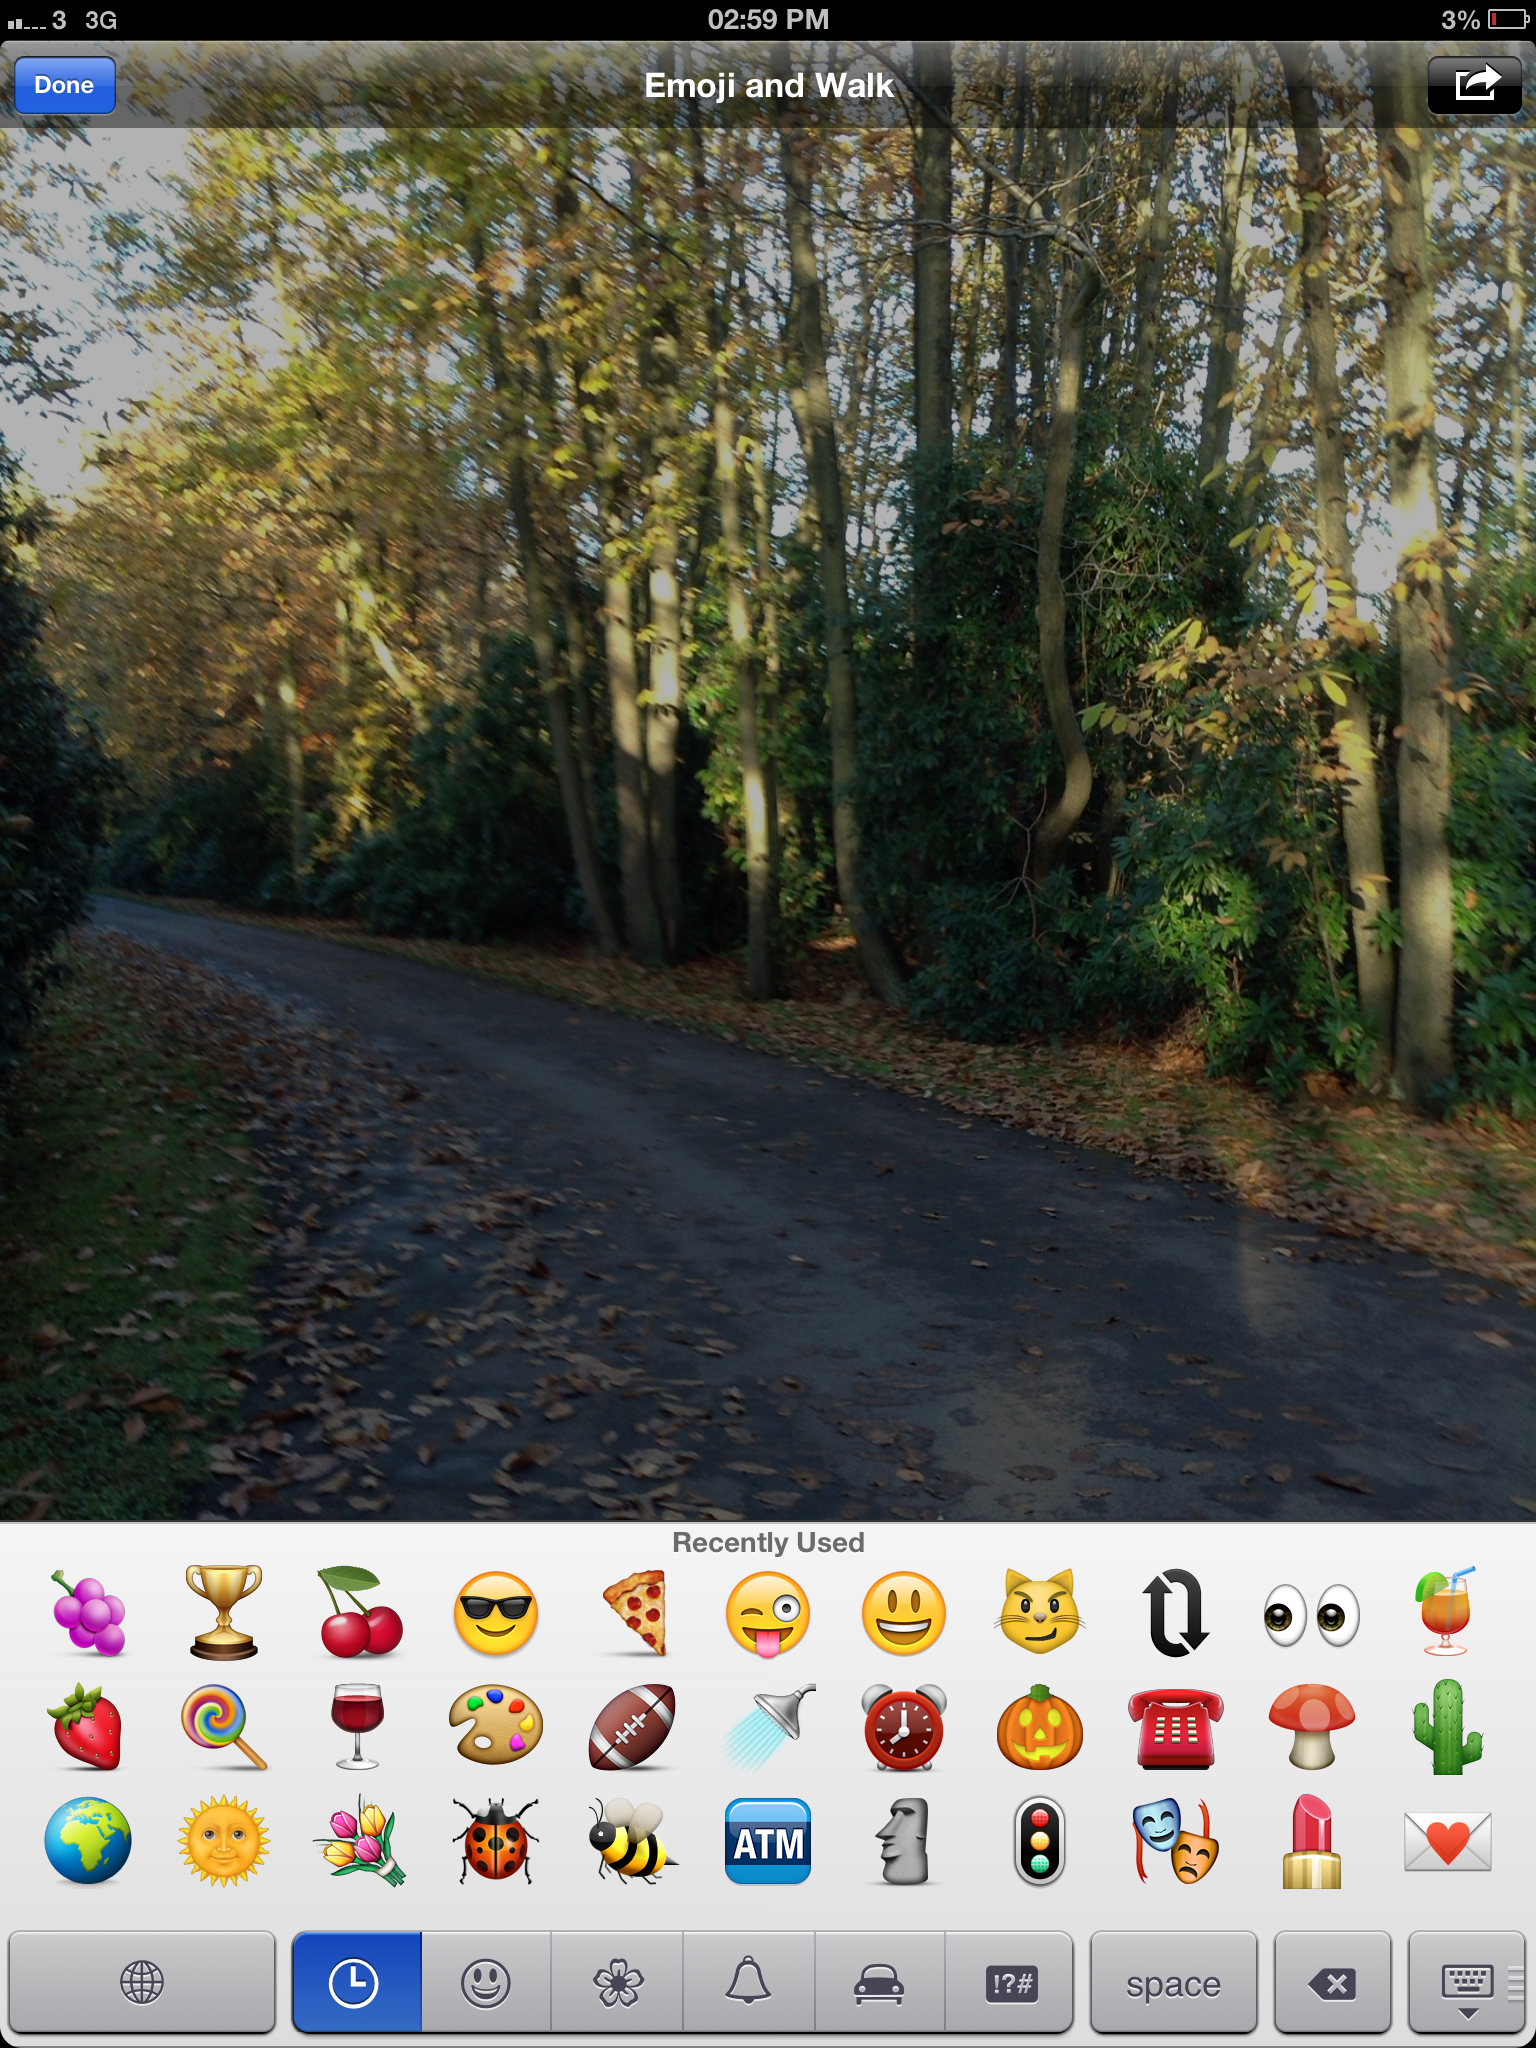 Emoji and Walk iPad